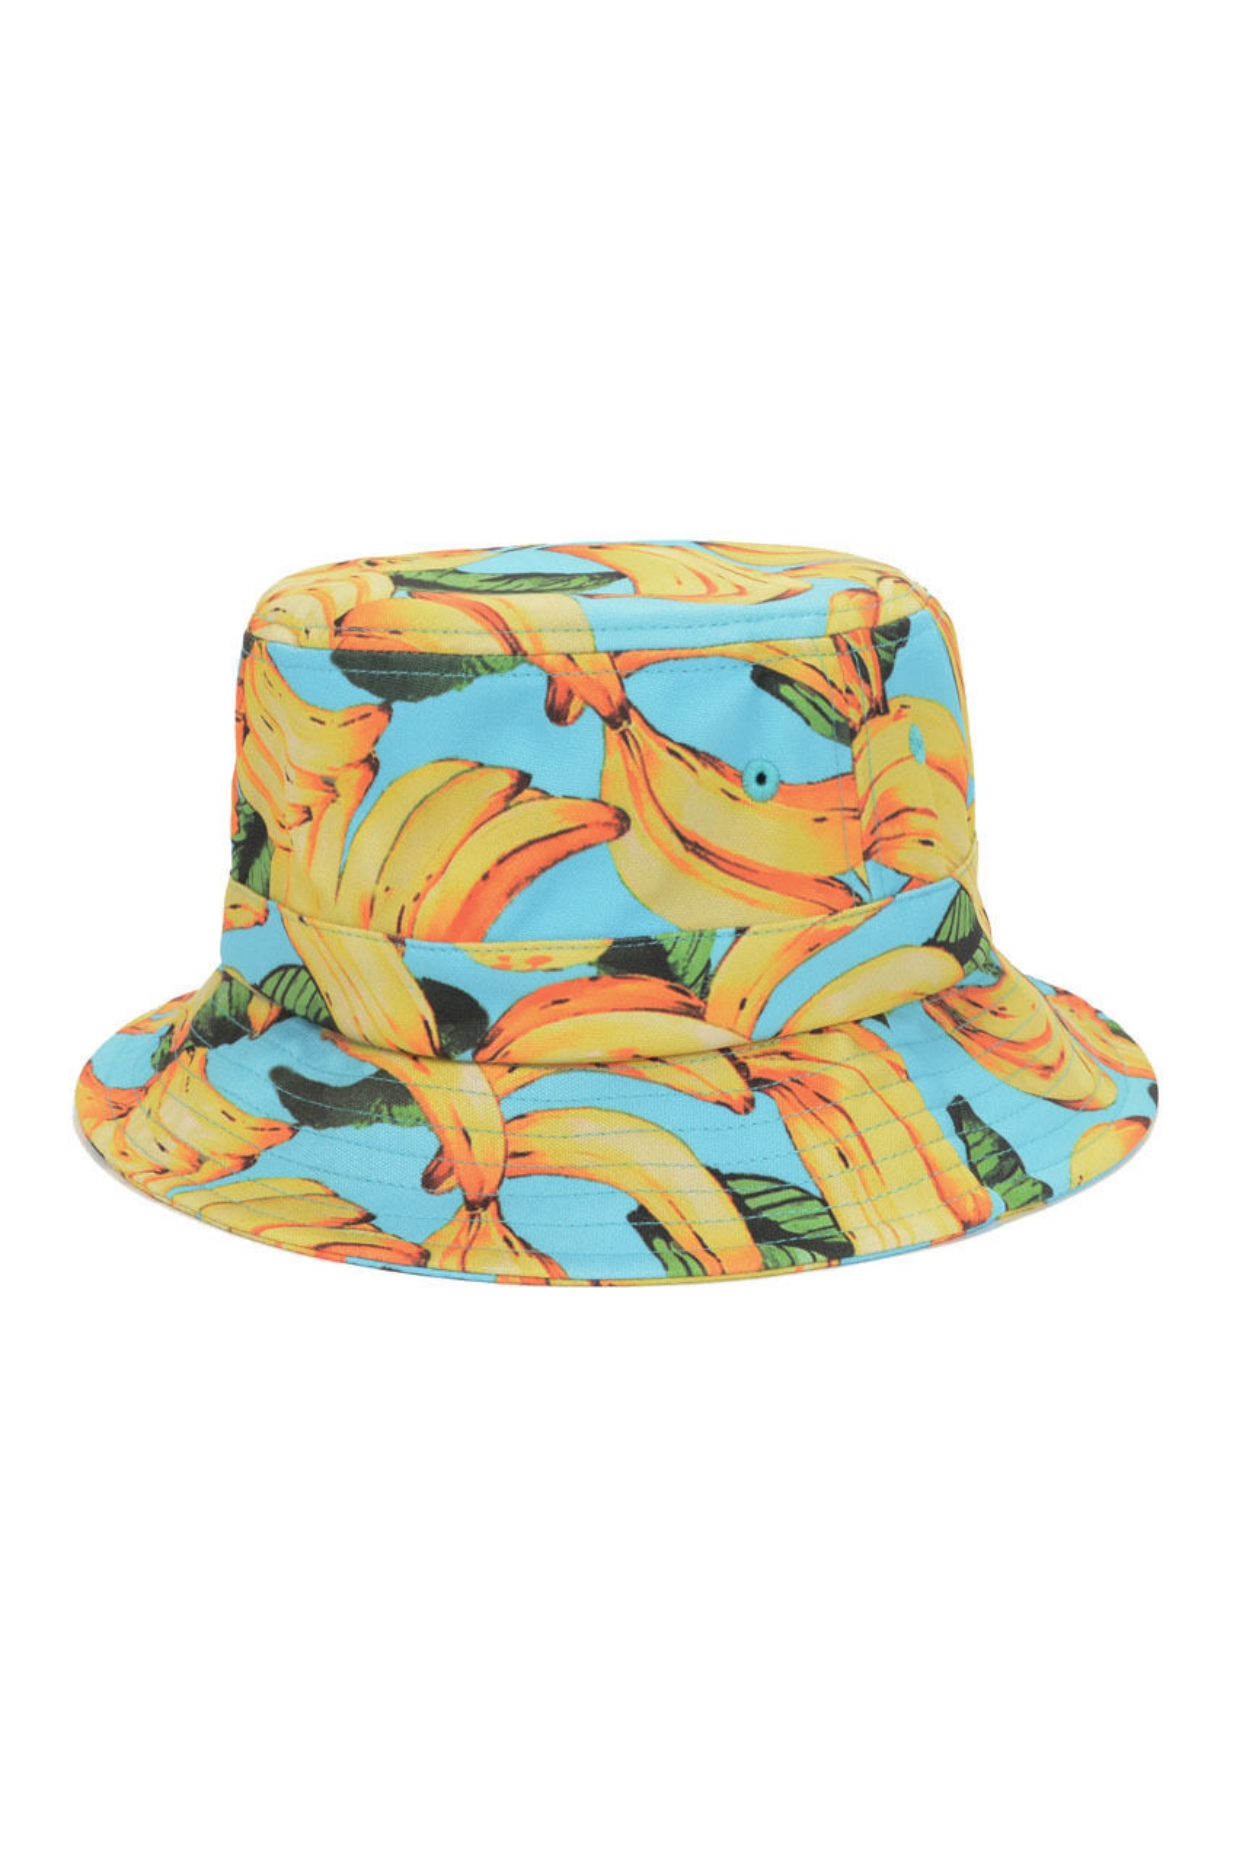 It's Bananas Bucket Hat | Just Vu